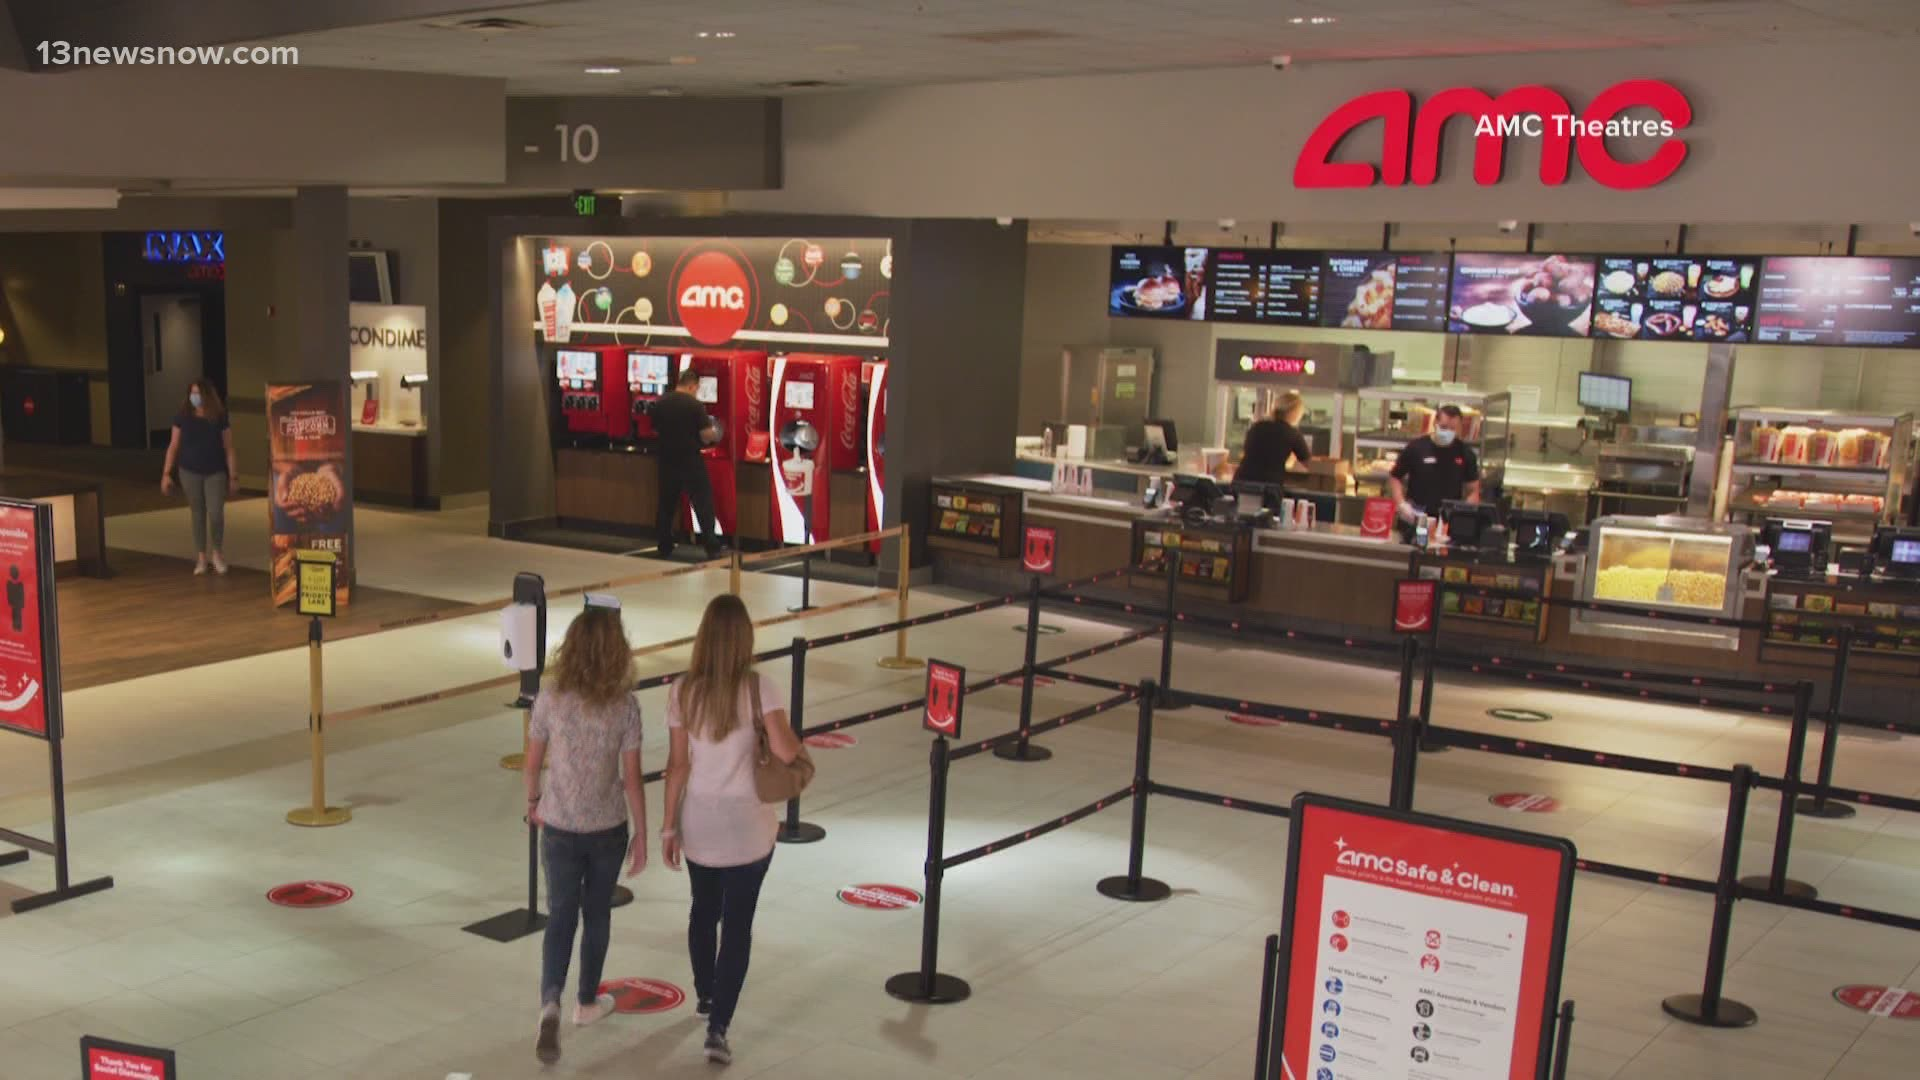 Amc Theatres Reopening Two Locations In Hampton Roads Offering 15 Cent Tickets For One Day 13newsnow Com